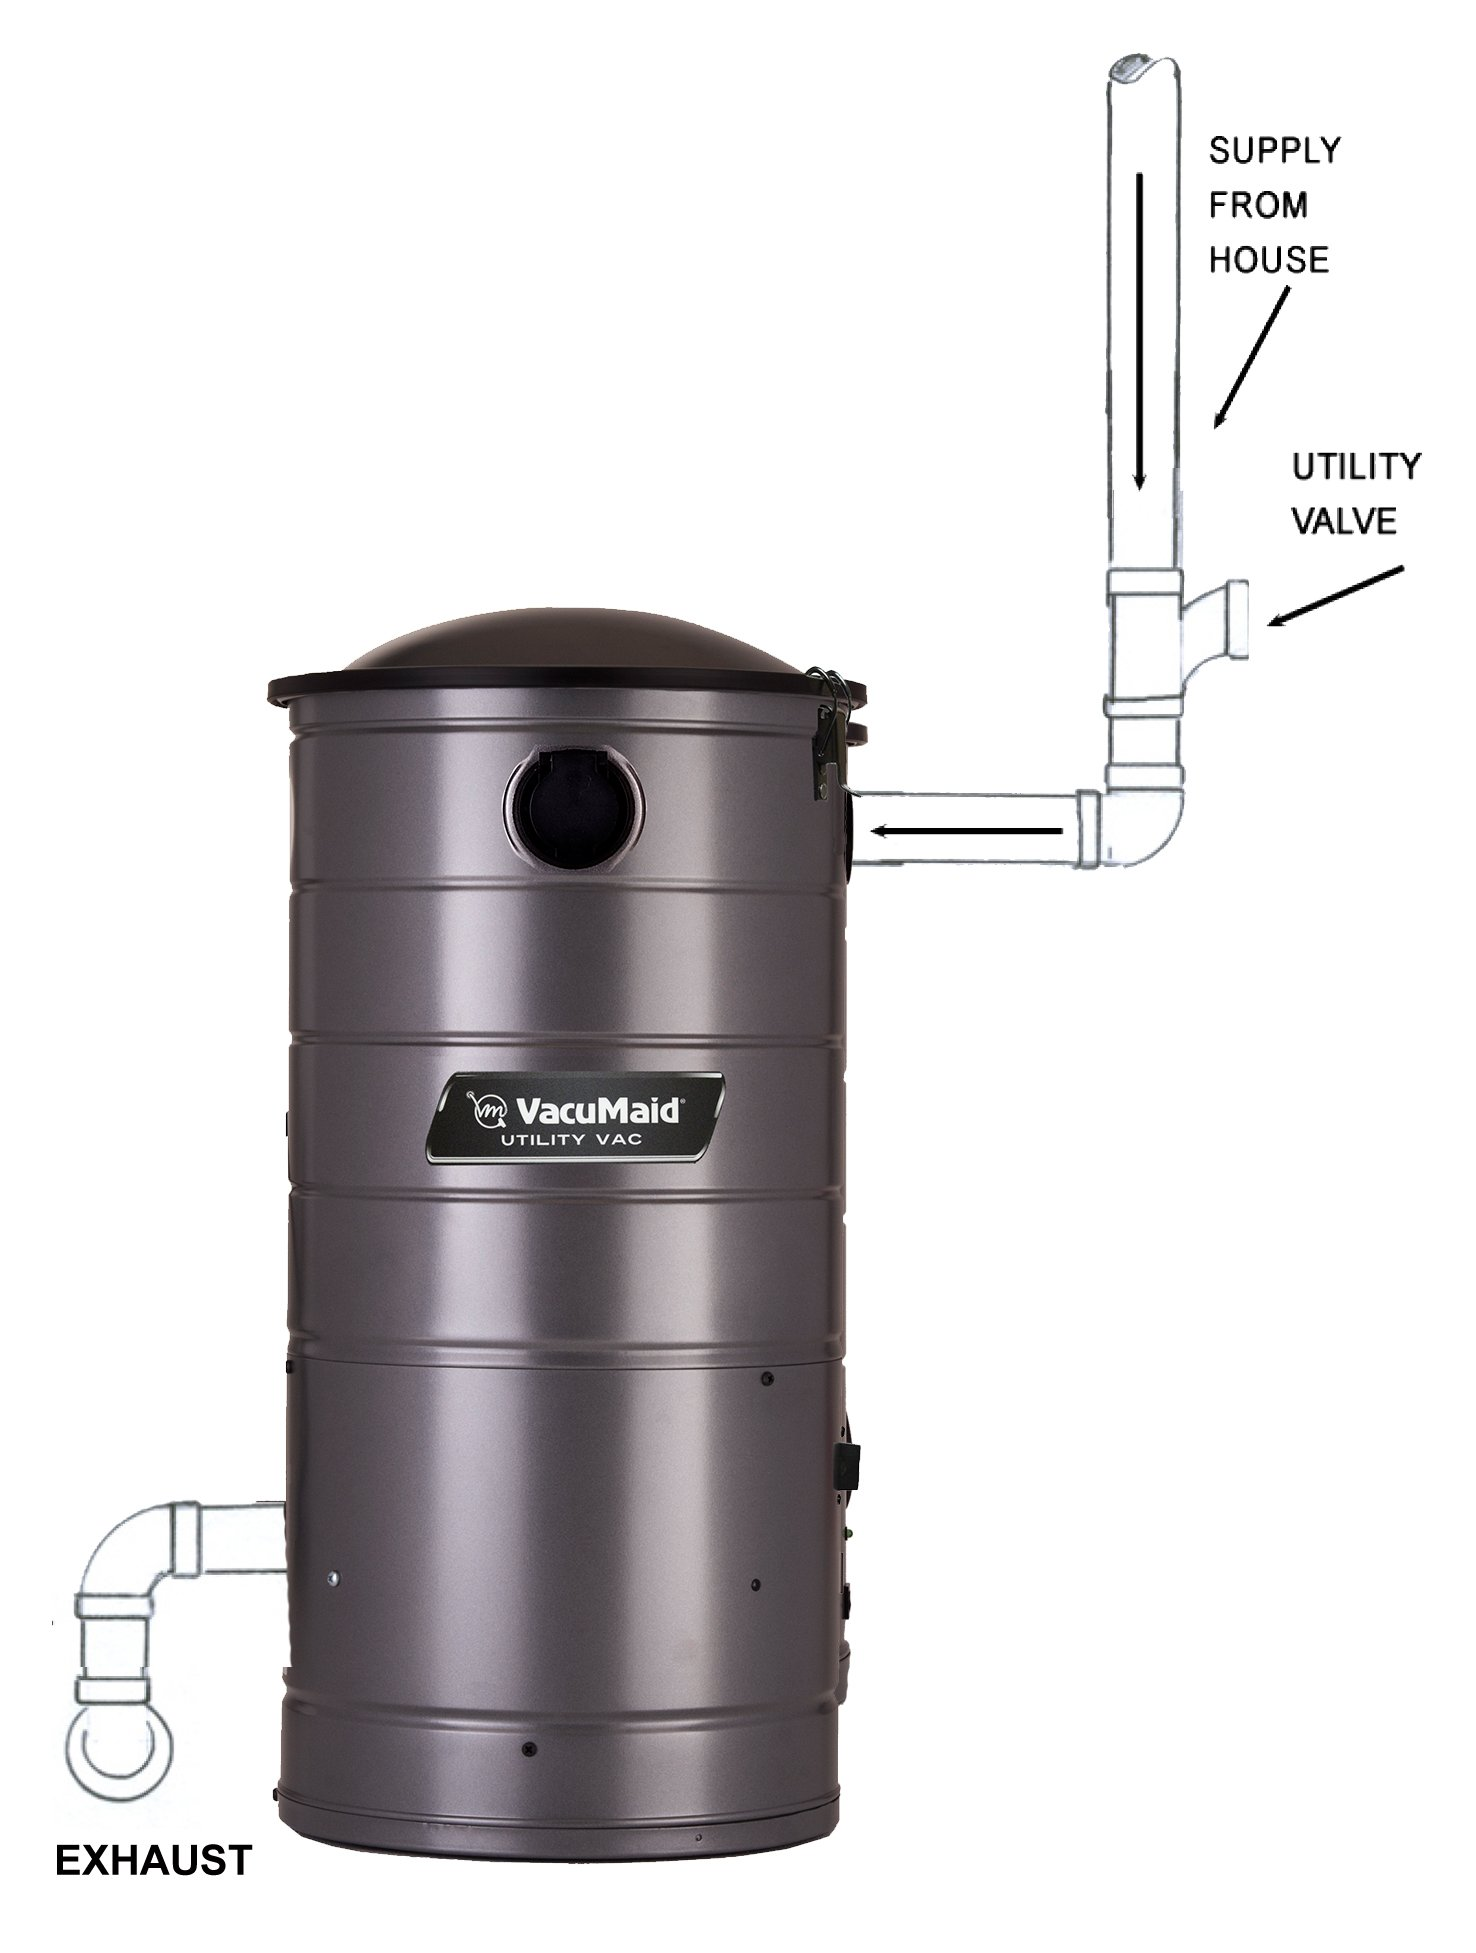 VacuMaid UV150CKP Extended Life Professional Wall Mounted Utility Vacuum with 50 ft. Car Kit Pro by VacuMaid (Image #2)